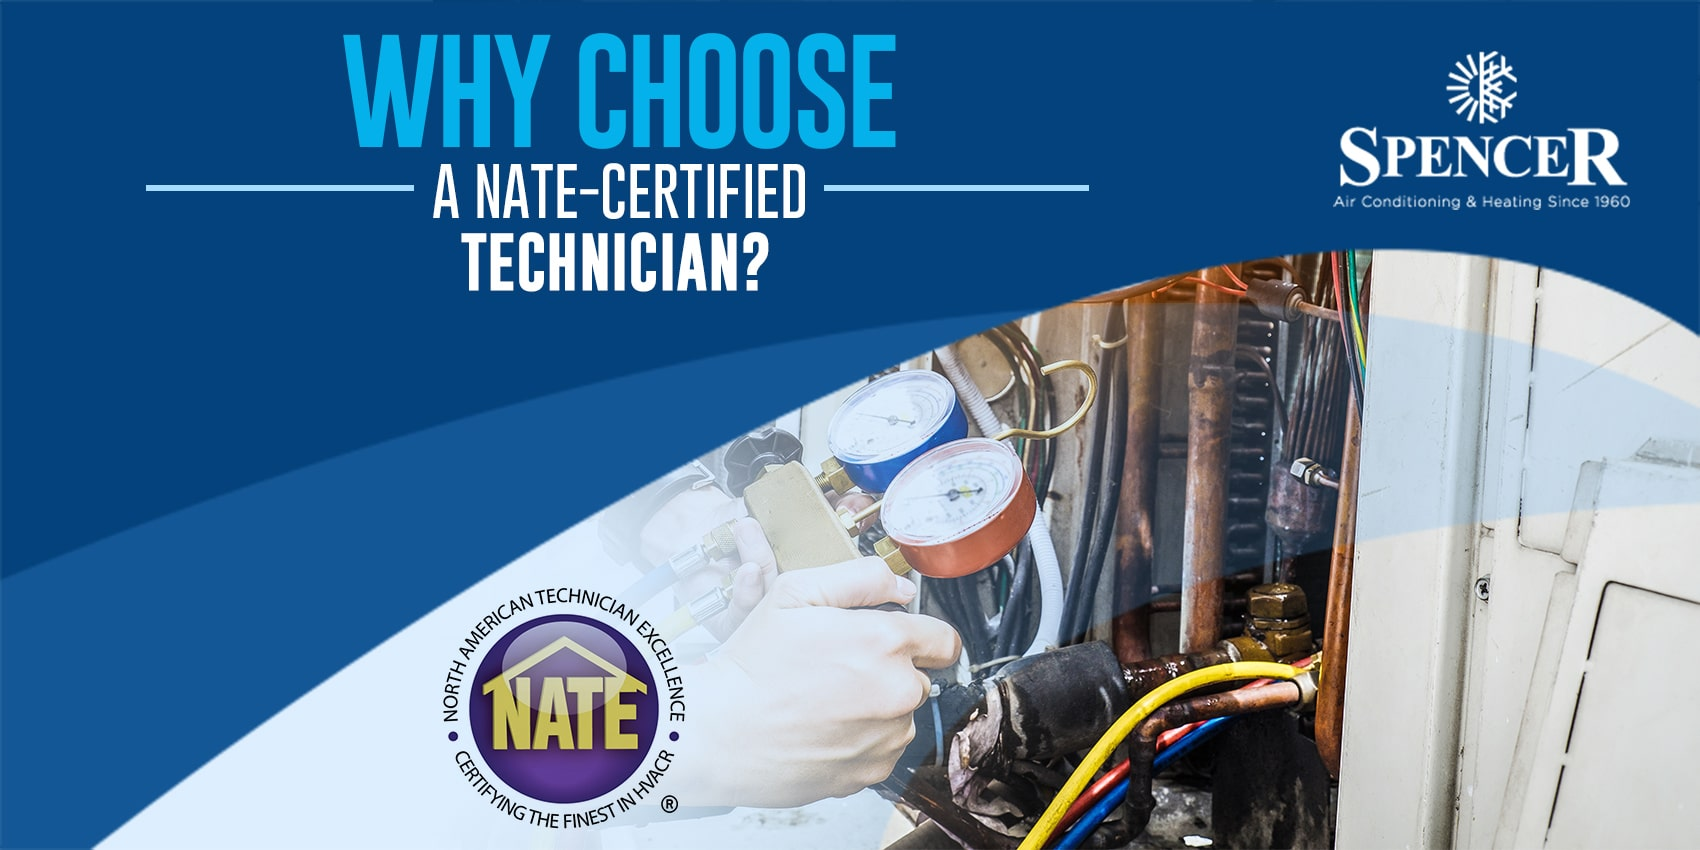 Why Choose a NATE-Certified Technician?